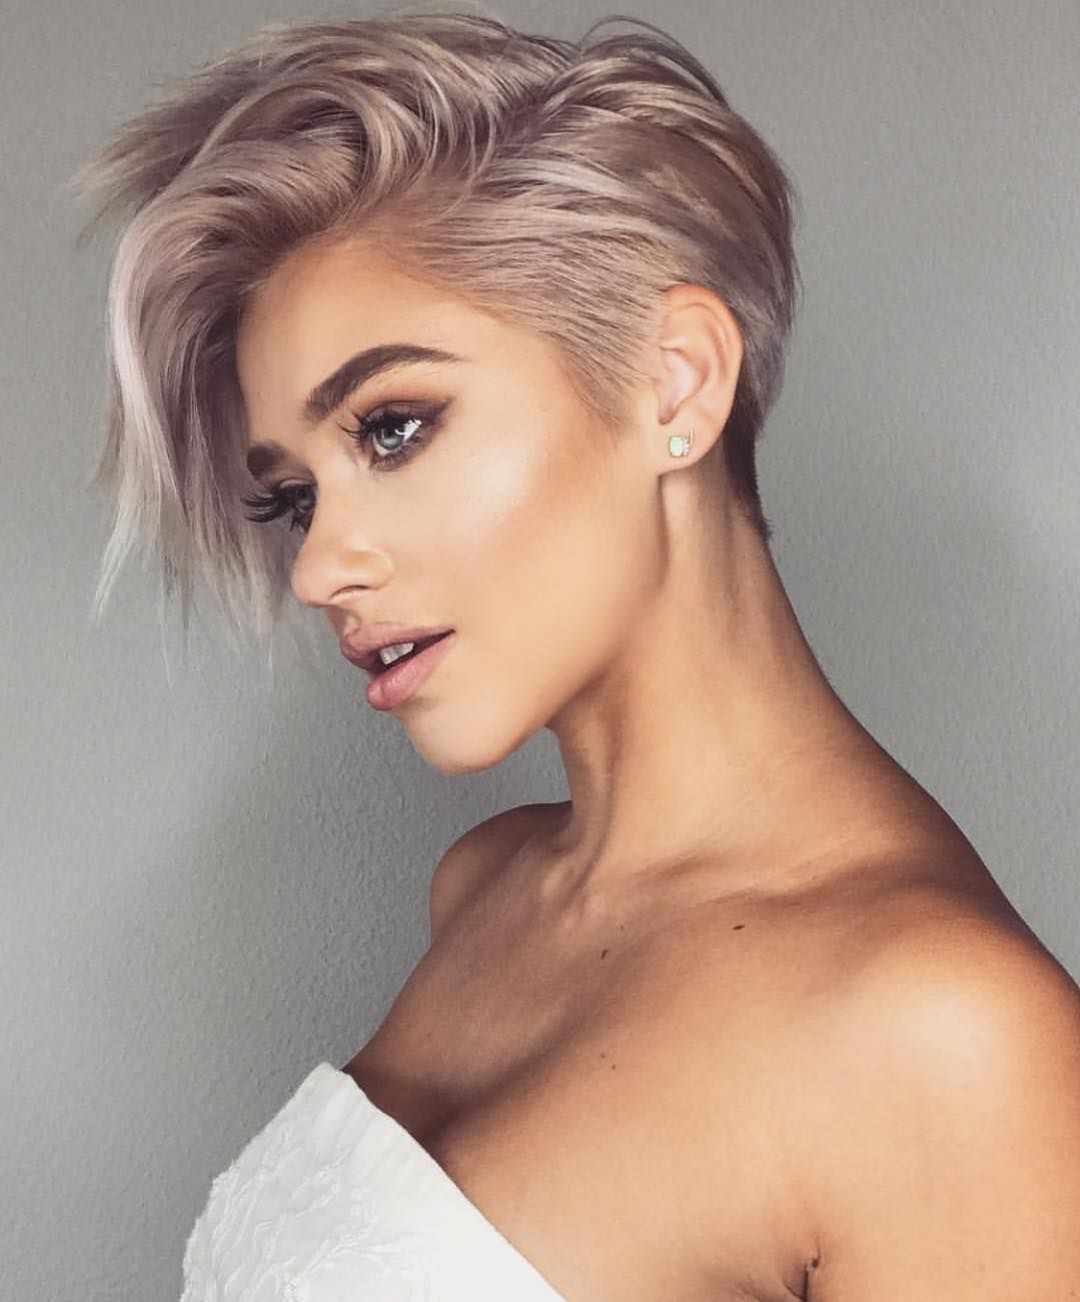 10 Trendy Very Short Haircuts for Female, Cool Short Hair Styles